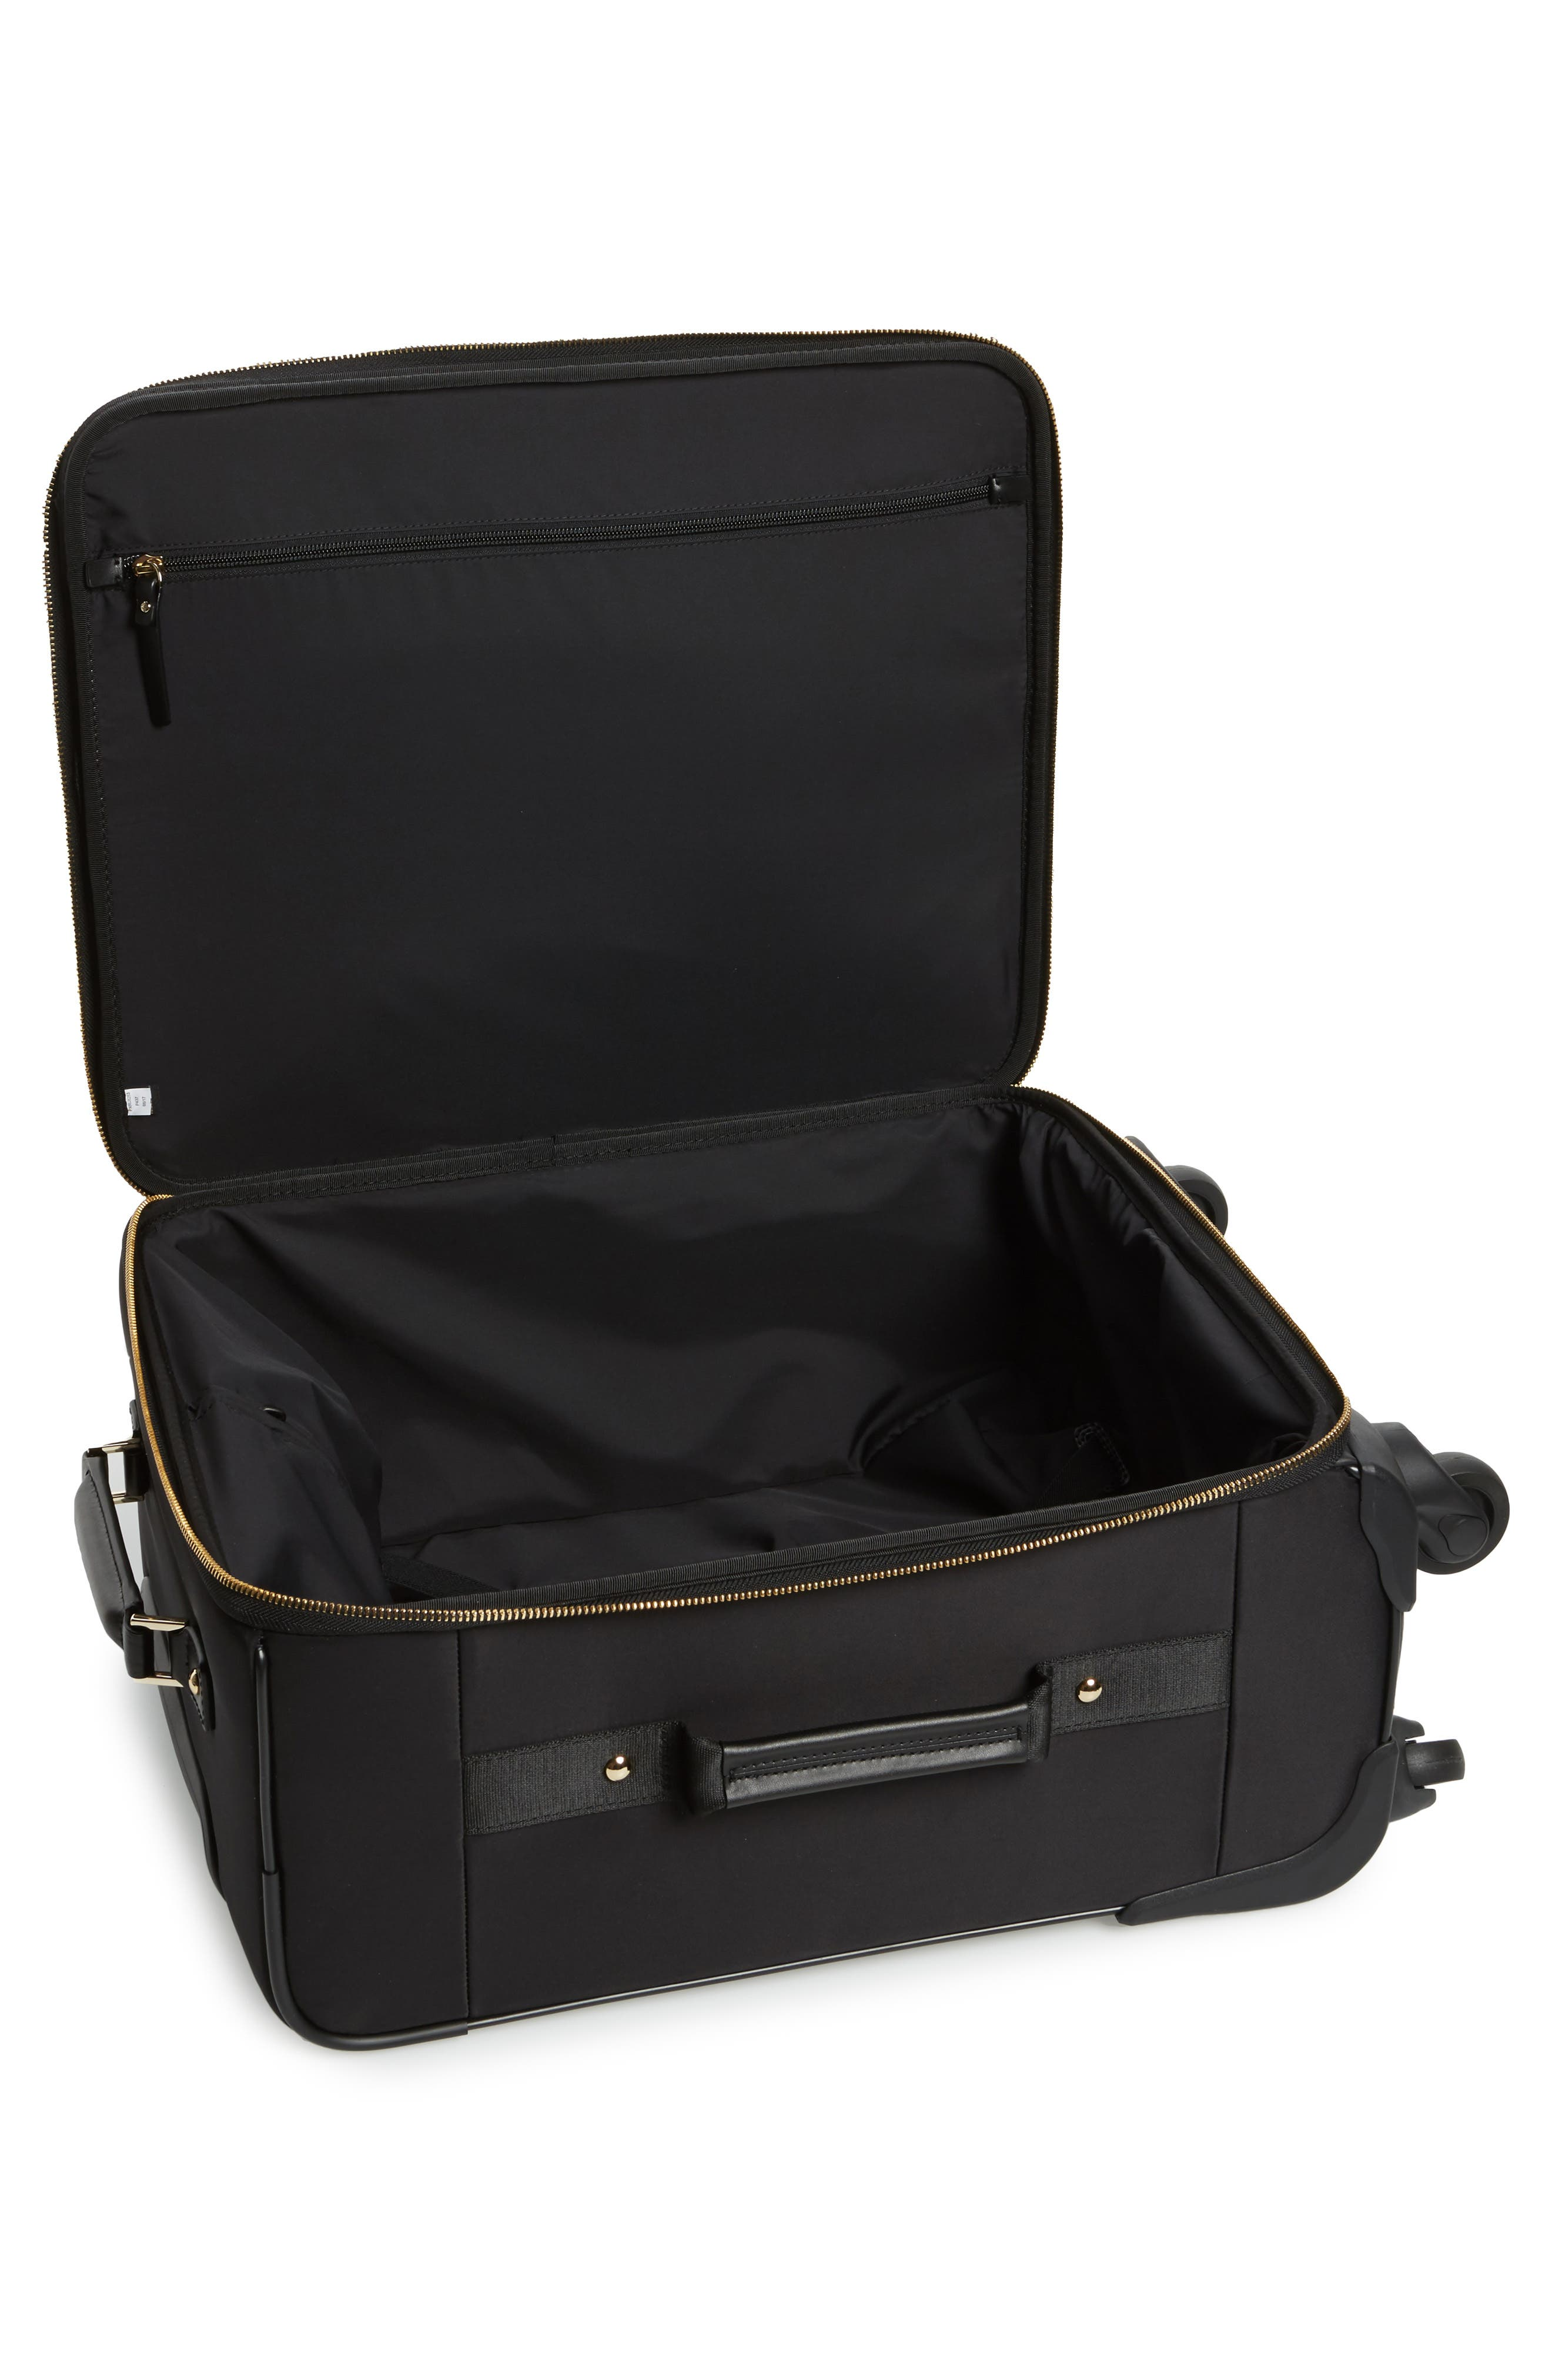 watson lane nylon international 21-inch rolling carry-on,                             Alternate thumbnail 2, color,                             Black